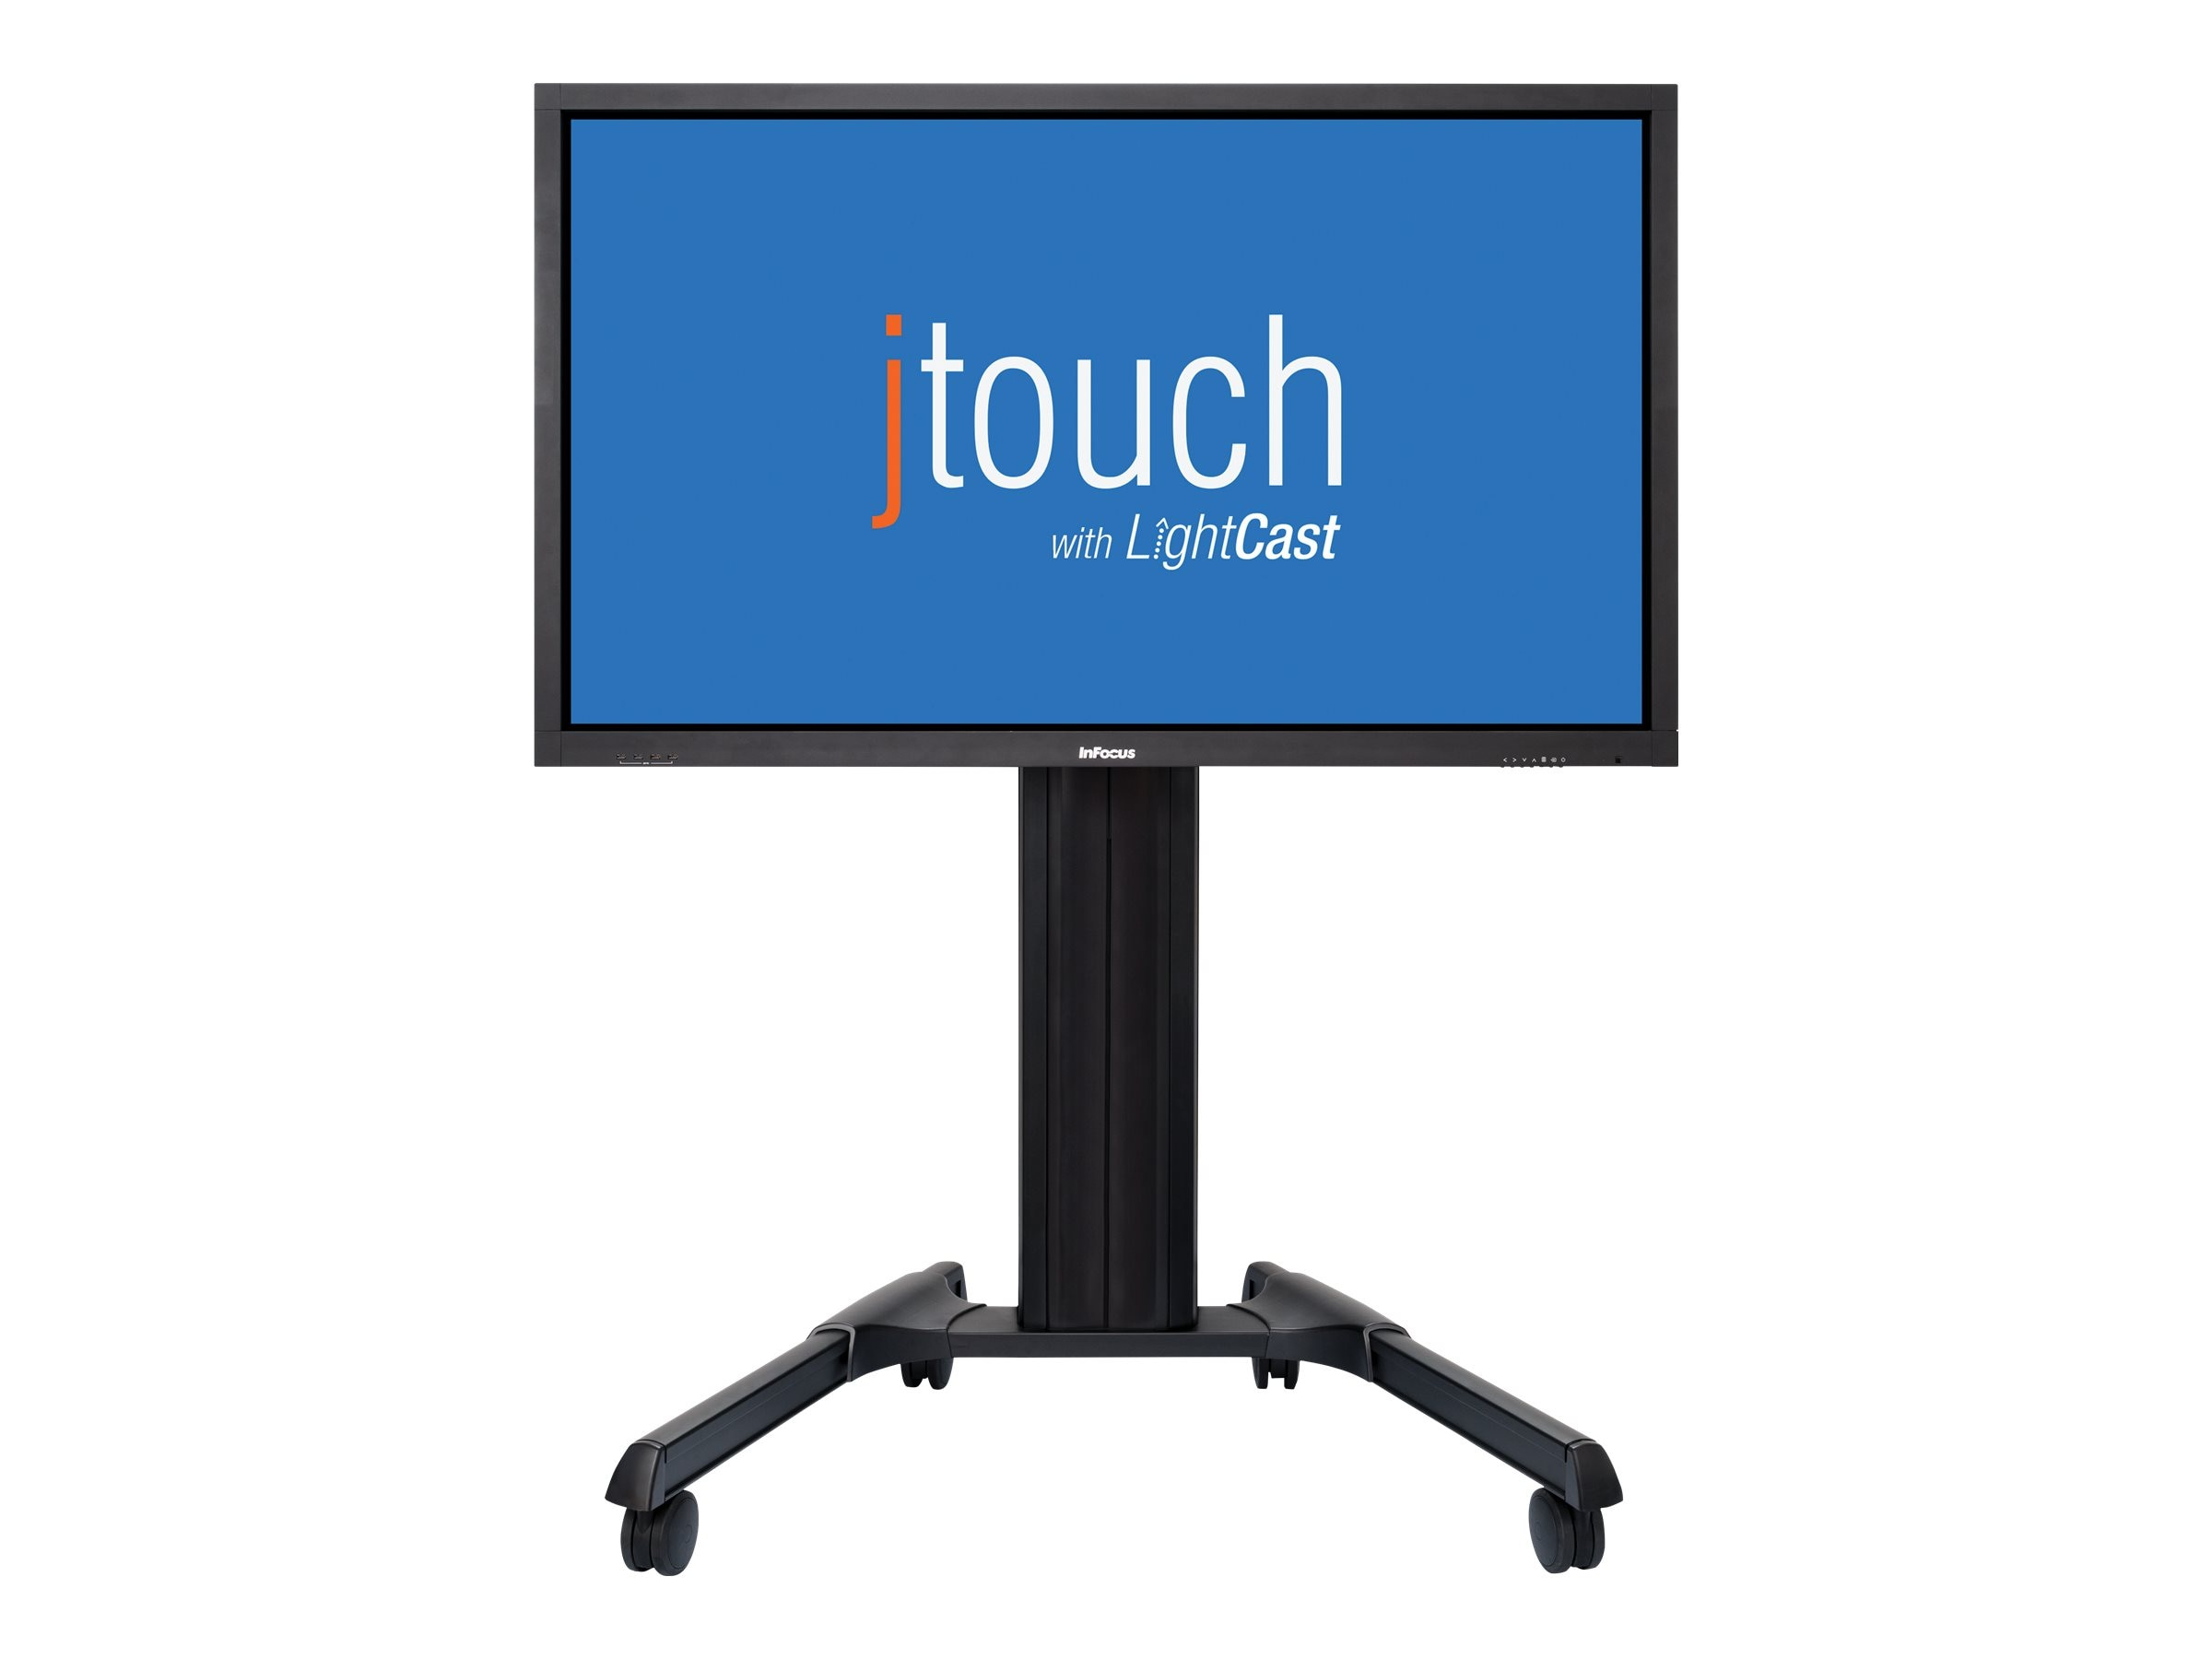 InFocus 65 JTouch Full HD LED-LCD Interactive Whiteboard Display with Wireless Collaboration and Anti-Glare, INF6501CBAG, 31937357, Monitors - Large-Format LED-LCD